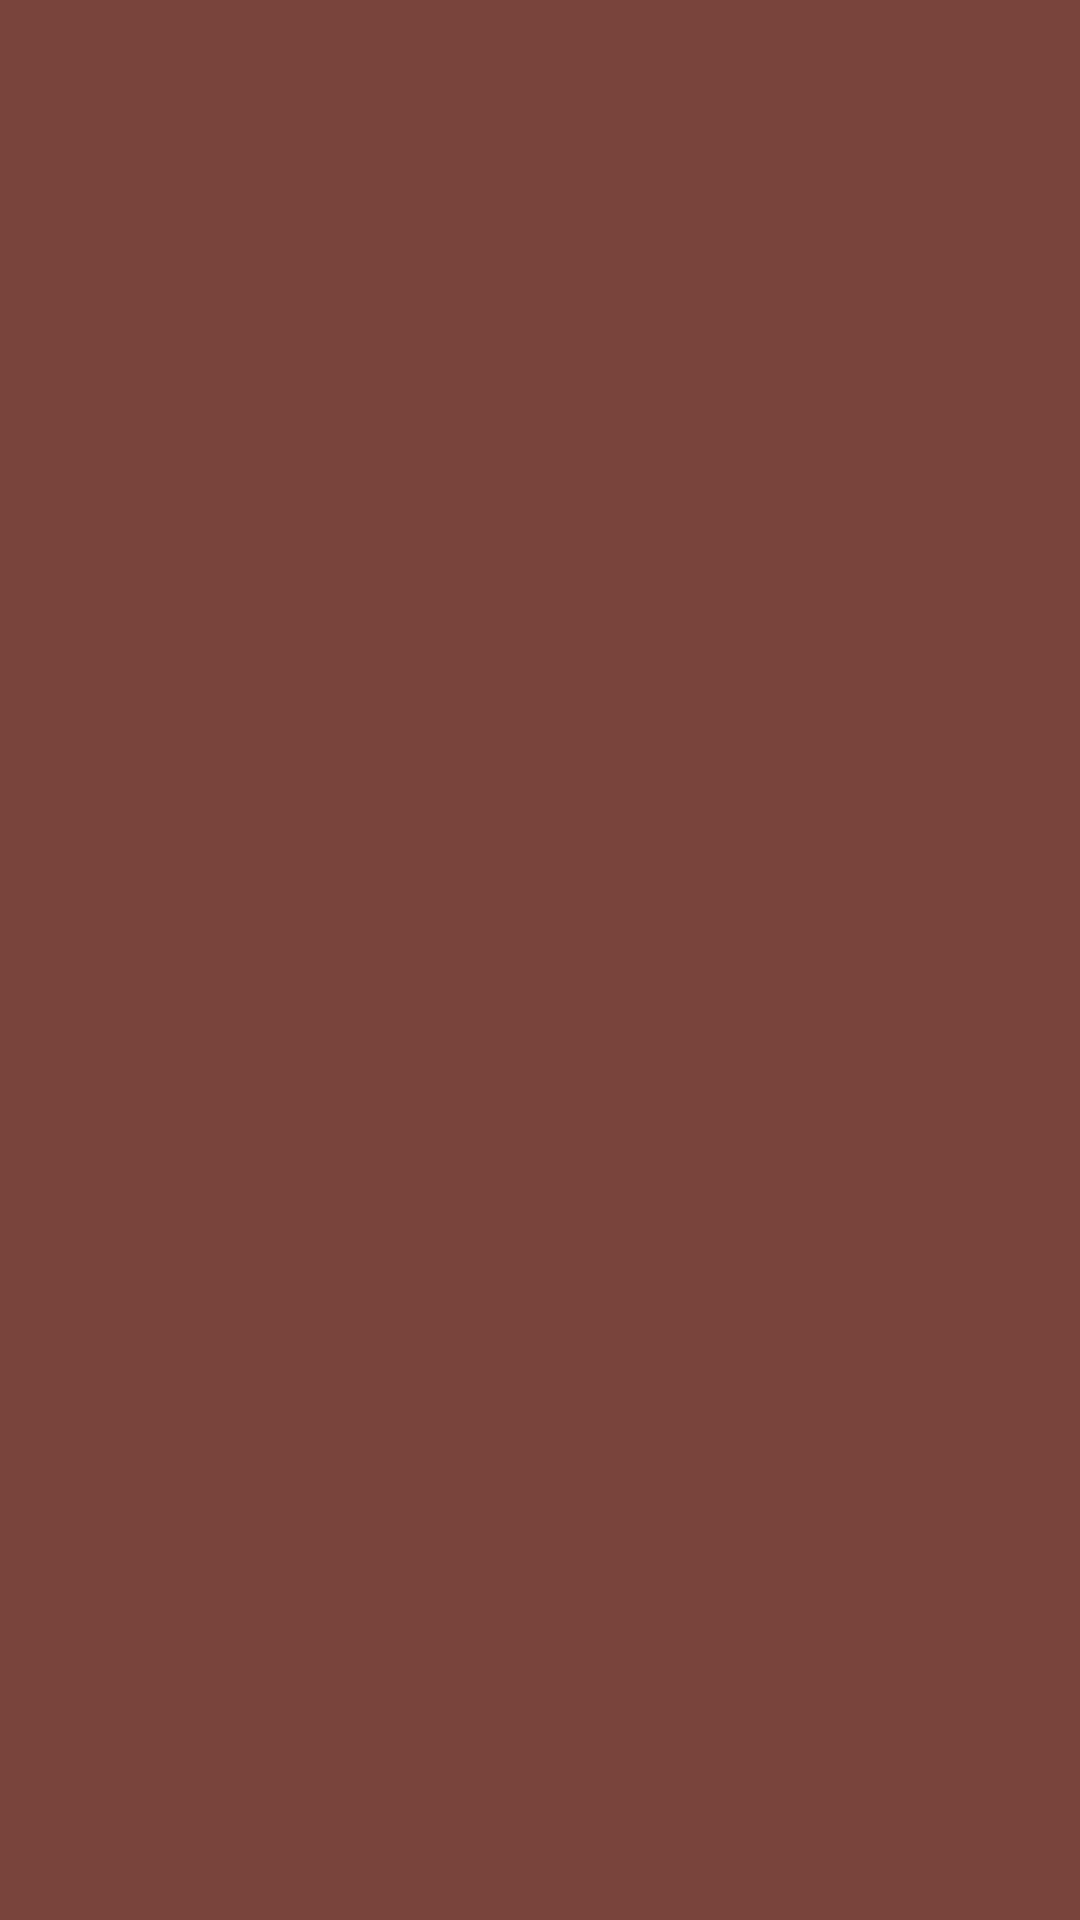 1080x1920 Medium Tuscan Red Solid Color Background